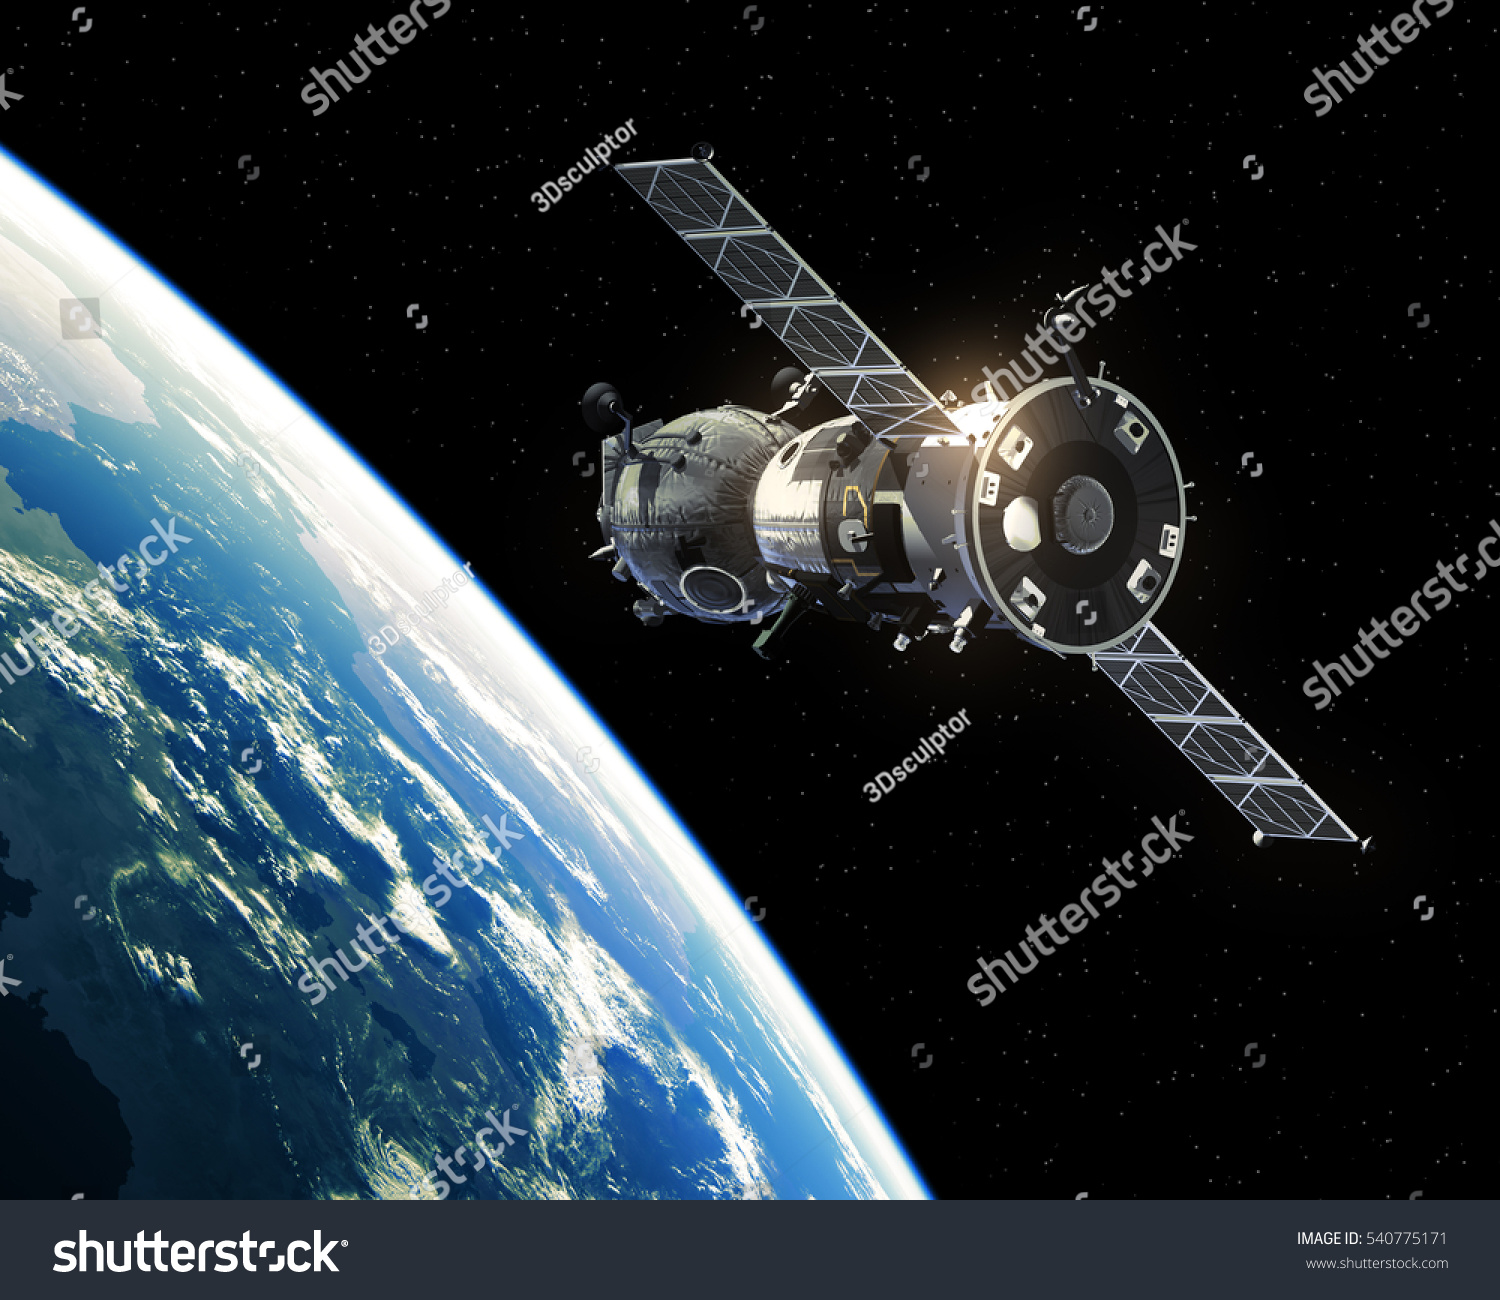 unknown spacecraft orbiting earth - photo #31